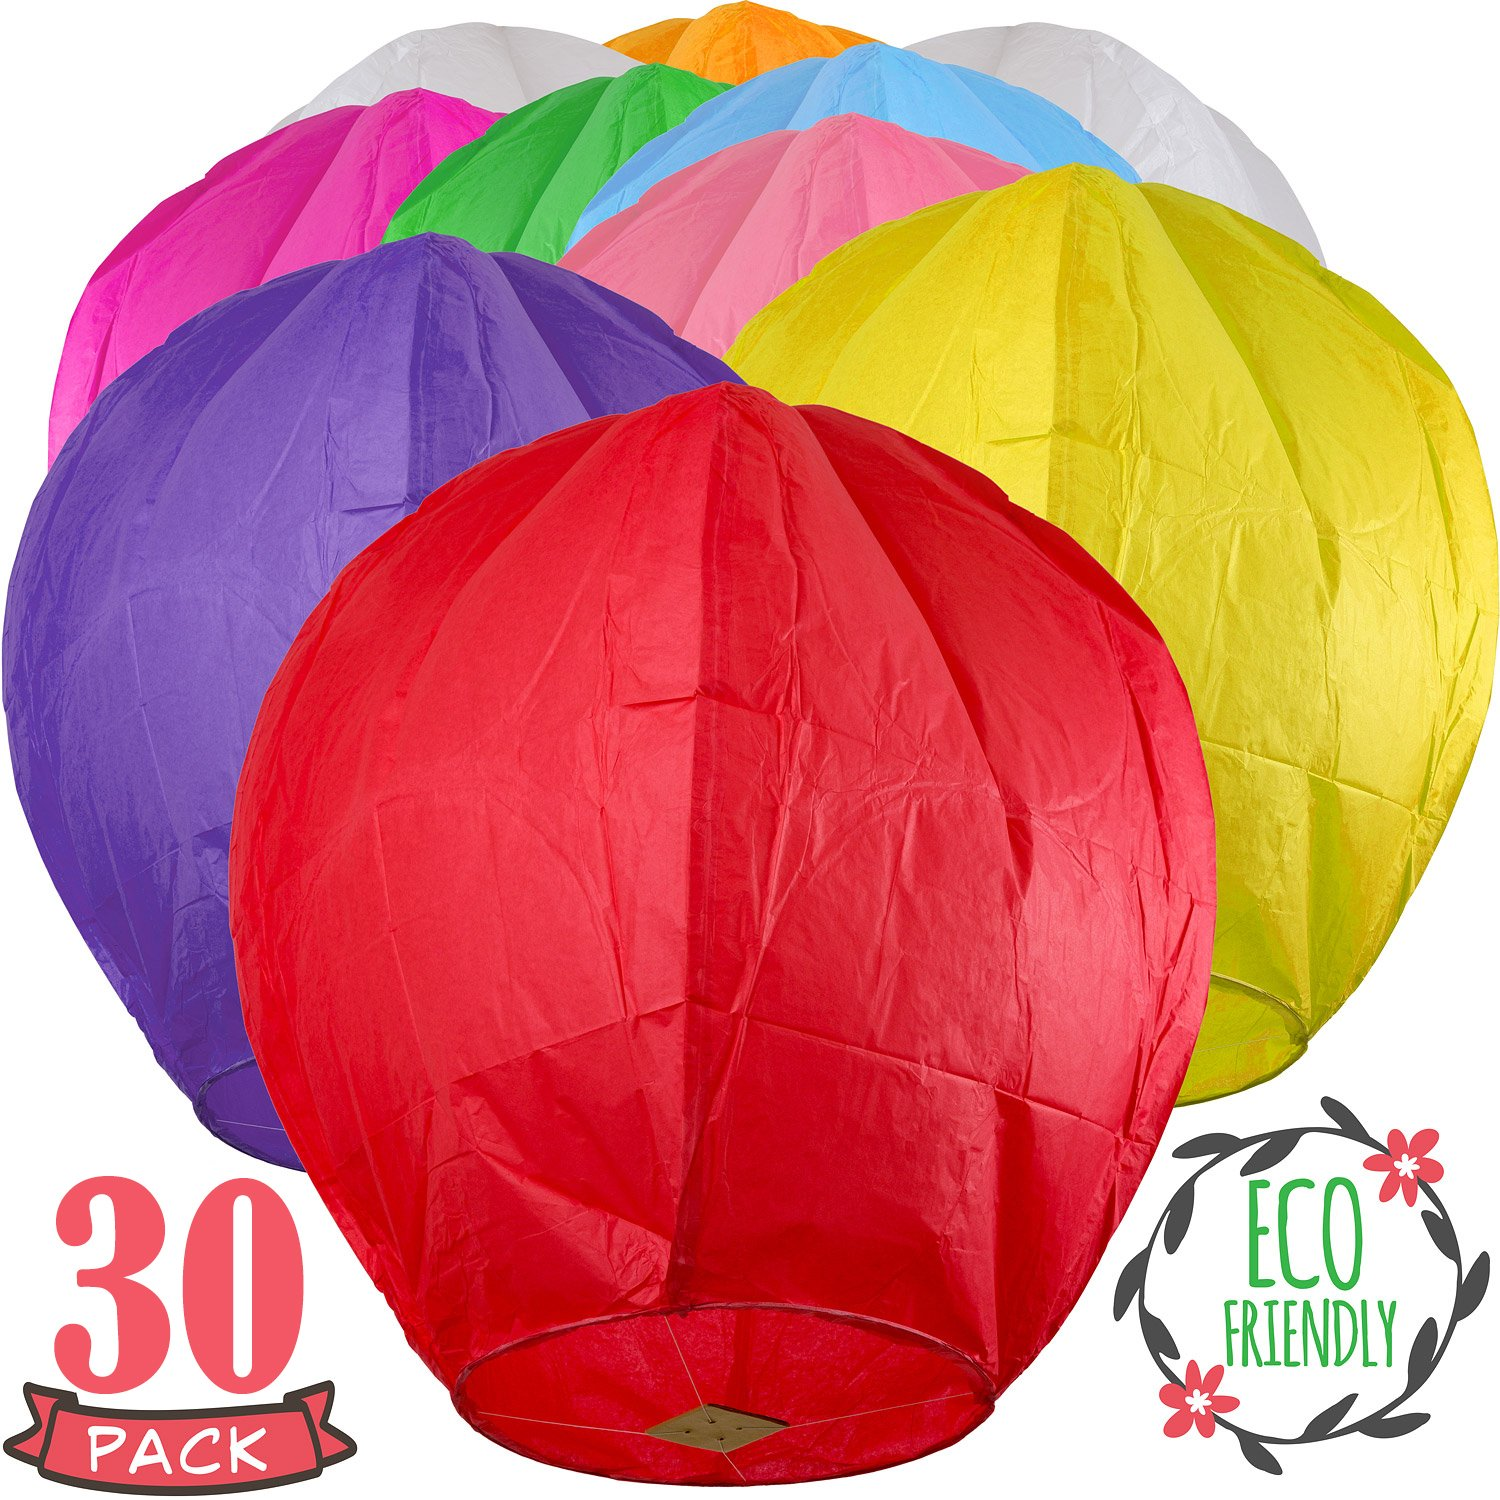 Chinese Lanterns 30-Pack Multi-Color, Fully Assembled and Fuel Cell Attached is 100% Biodegradable, New Designed Sky Lantern with Gift Box Coral Entertainments for Any Occasion. (Multi-Color) by SKY HIGH